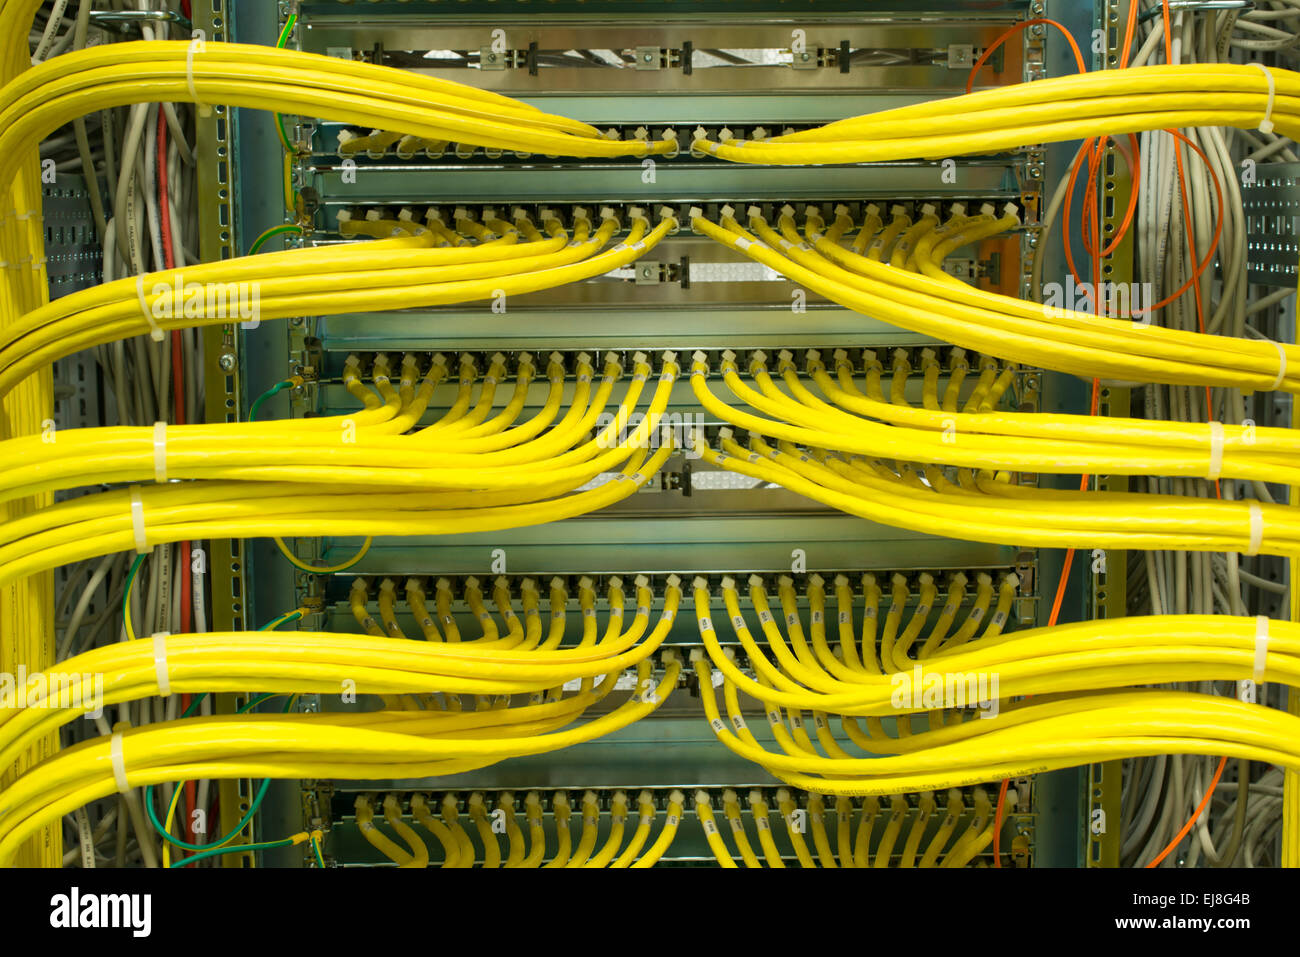 Wiring Diagram Of Network Cable Network Lan Patch Panel Stock Photo 80093563 Alamy